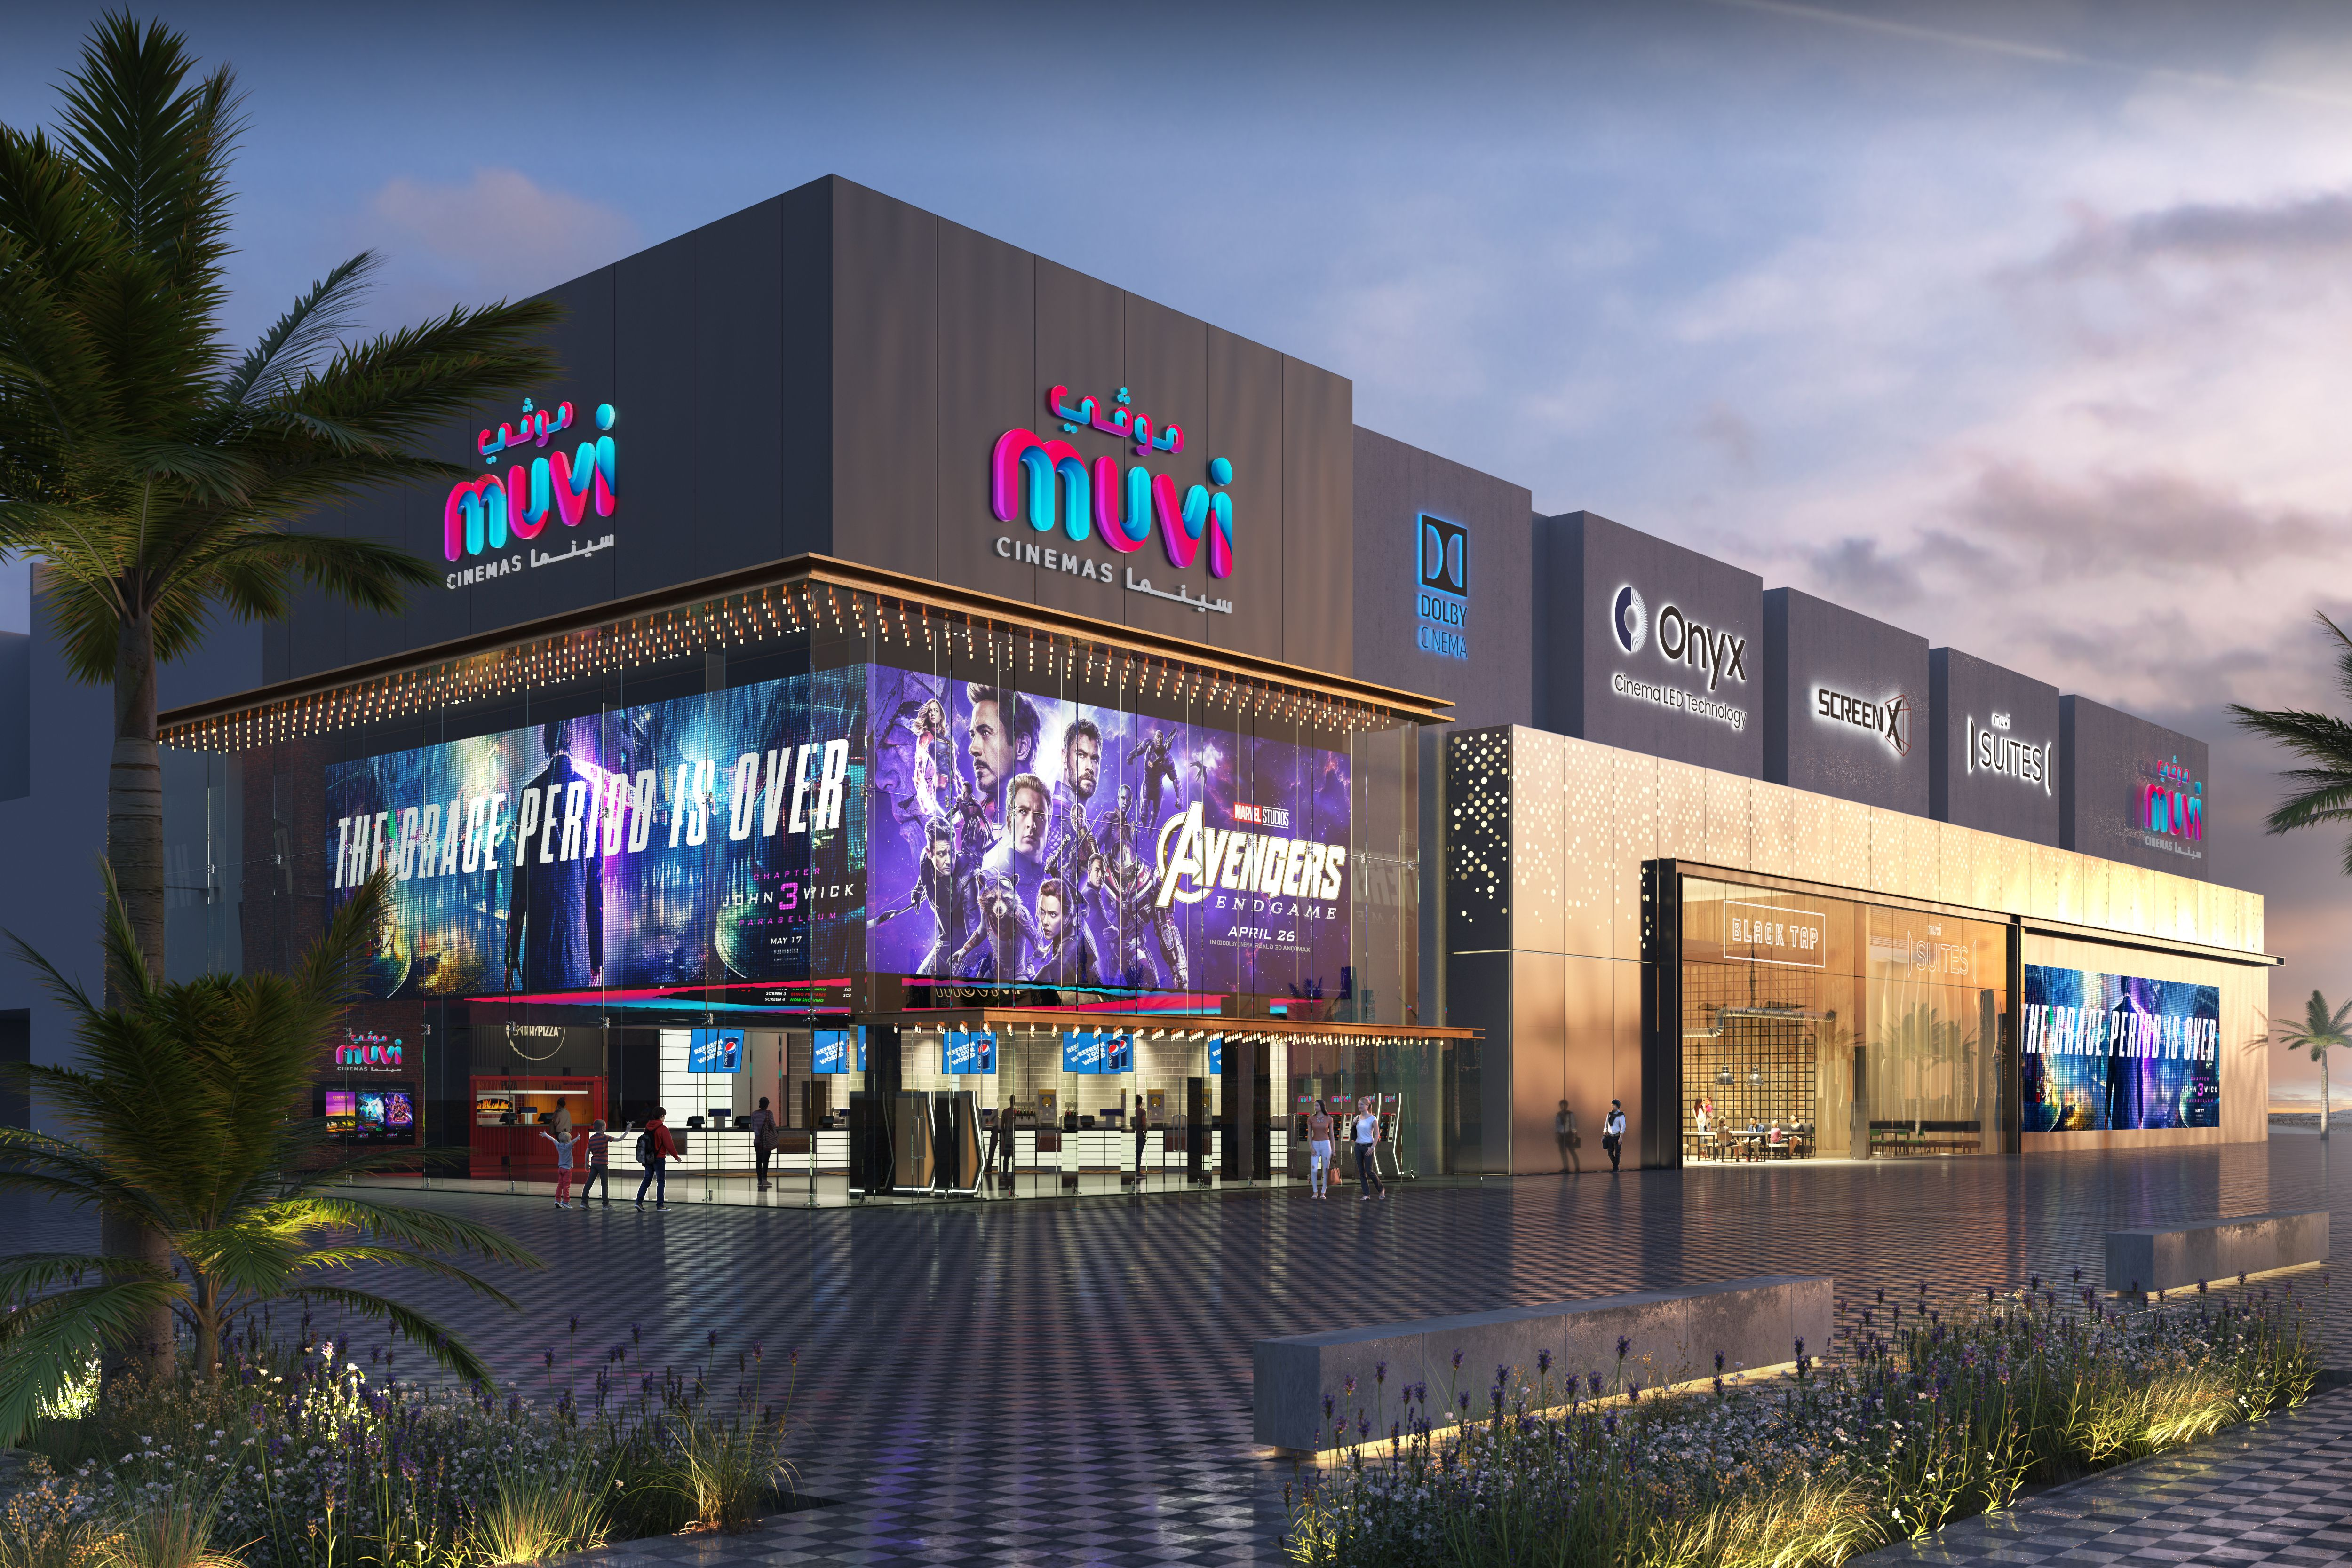 Muvi U Walk Cinema Riyadh Cinema Saudi Arabia Family Entertainment